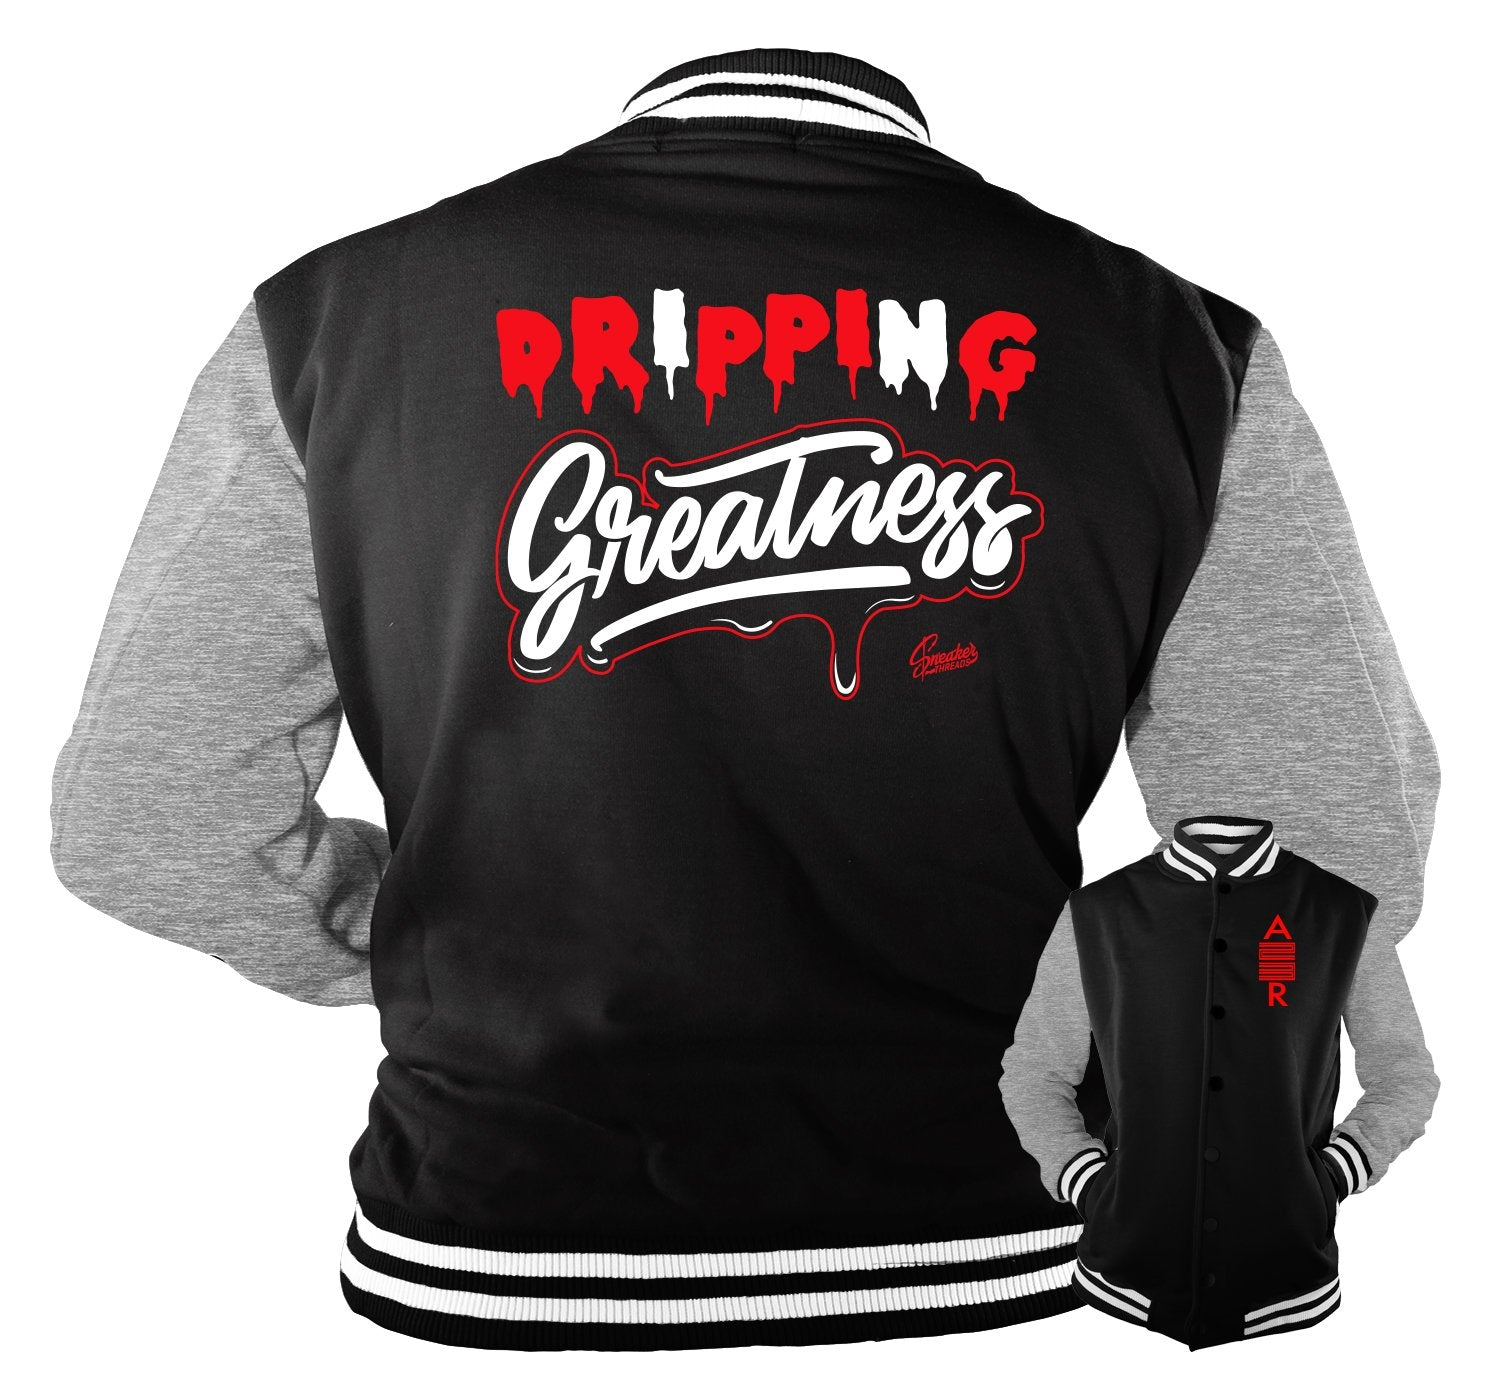 jackets designed to match the Jordan 11 bred shoe collection